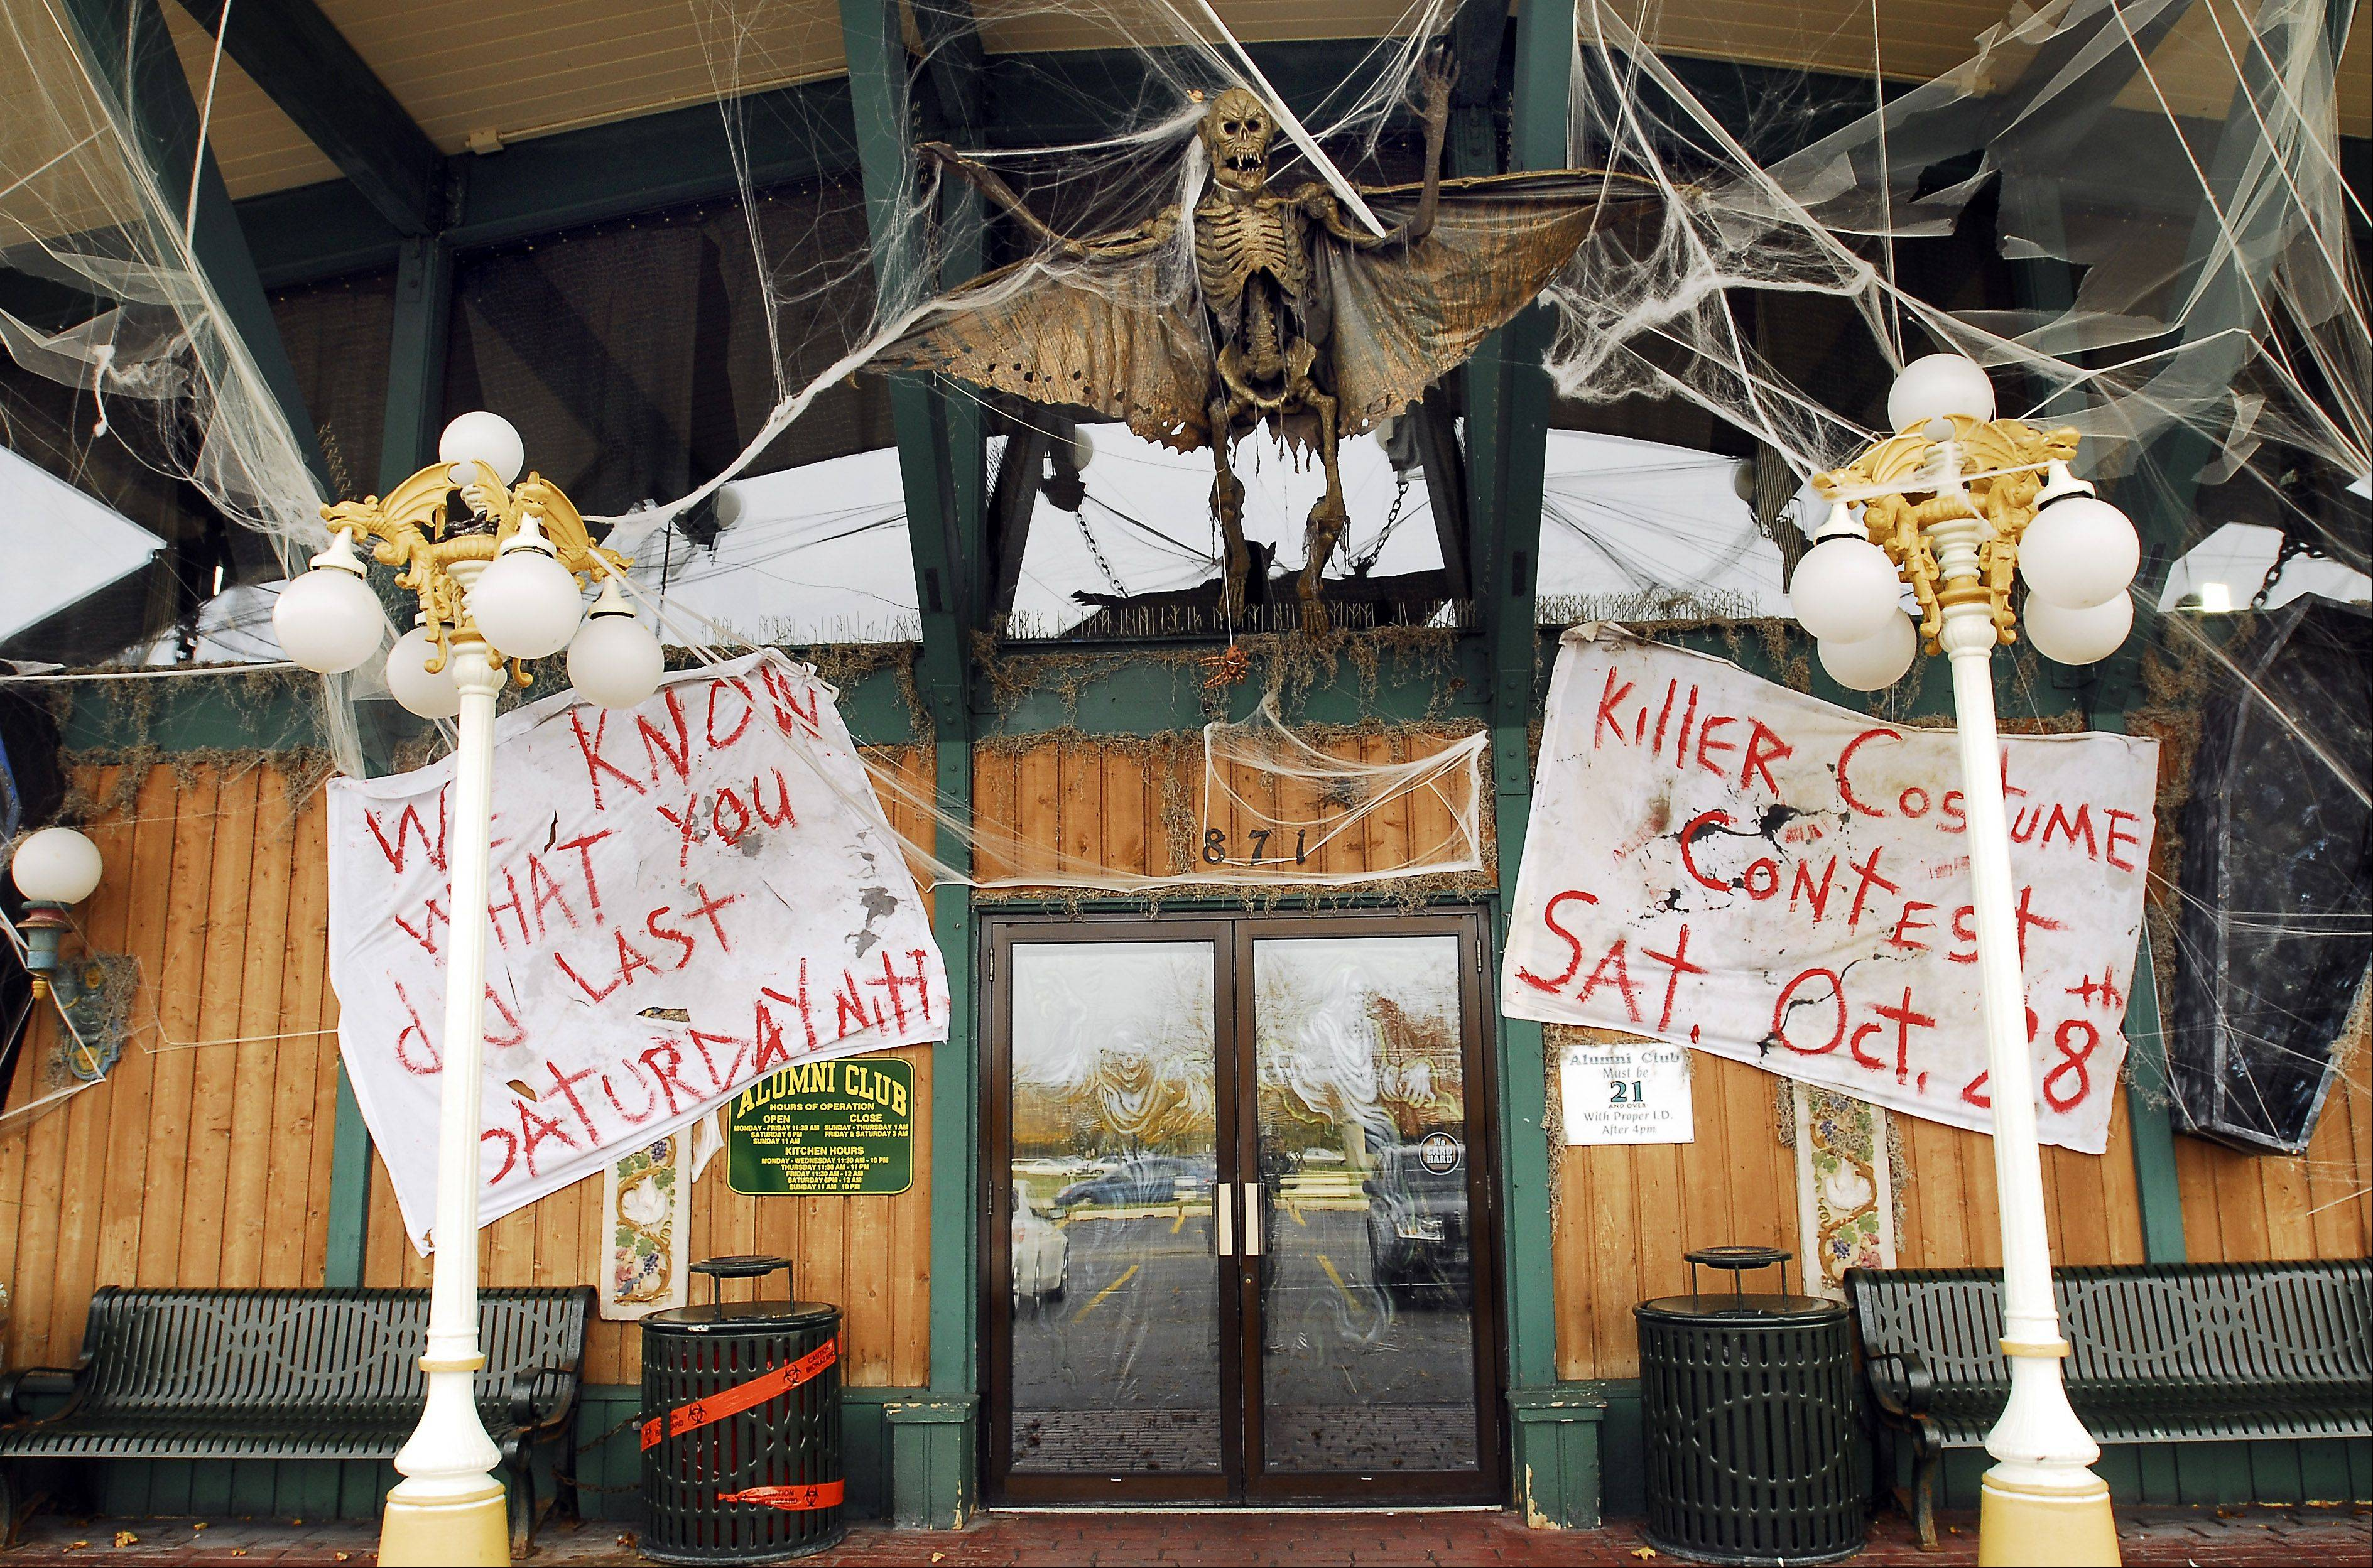 Schaumburg's Alumni Club was decorated for Halloween in 2006. The club closed in 2010, but a new version called Alumni Pub as planned for a location at 1712 Wise Road.